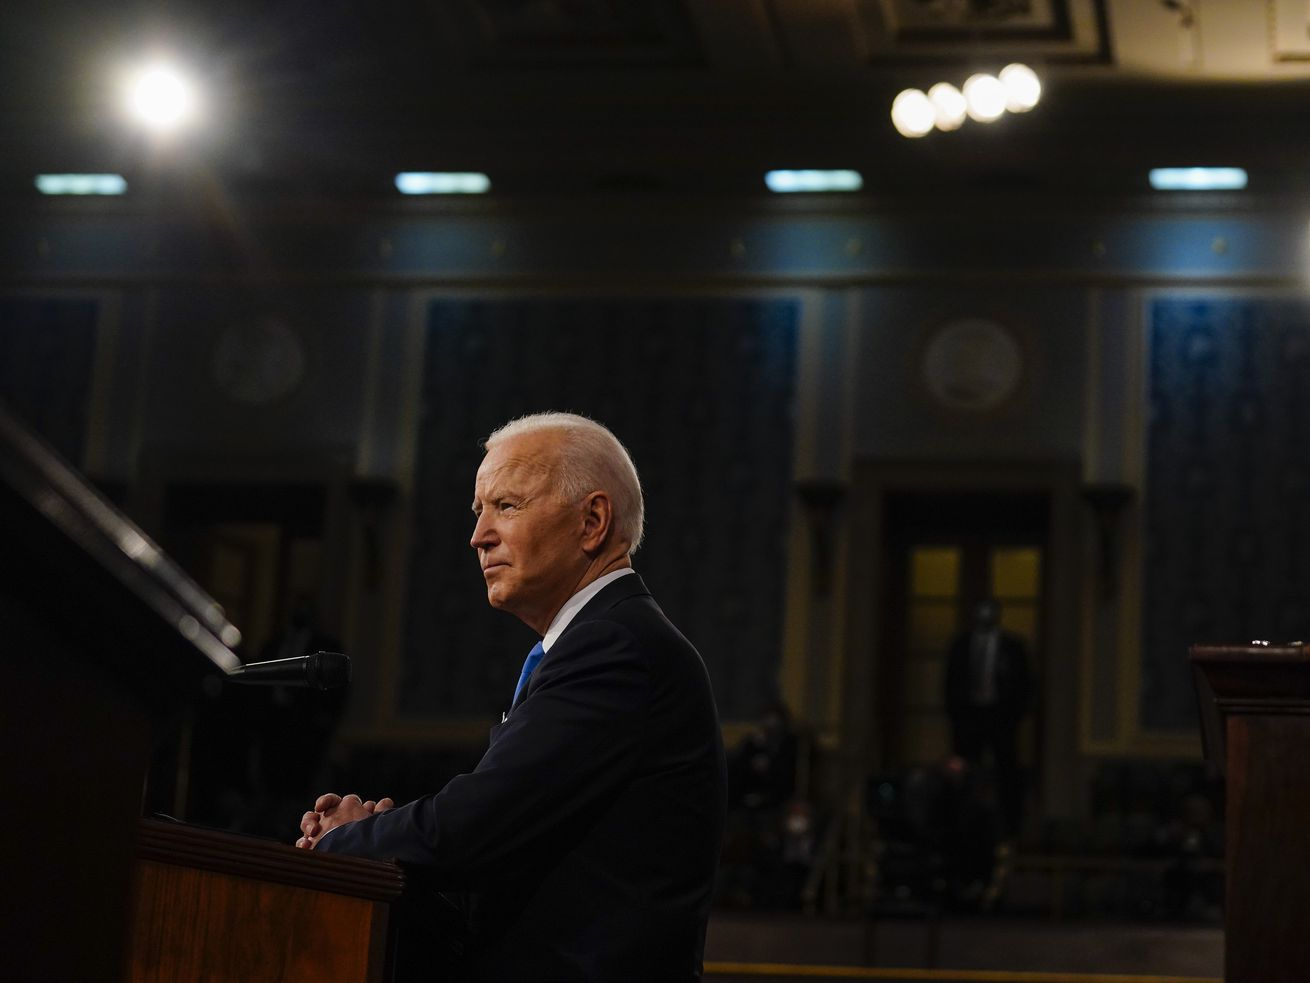 President Joe Biden speaks to a joint session of Congress on April 28, 2021, in Washington, DC.